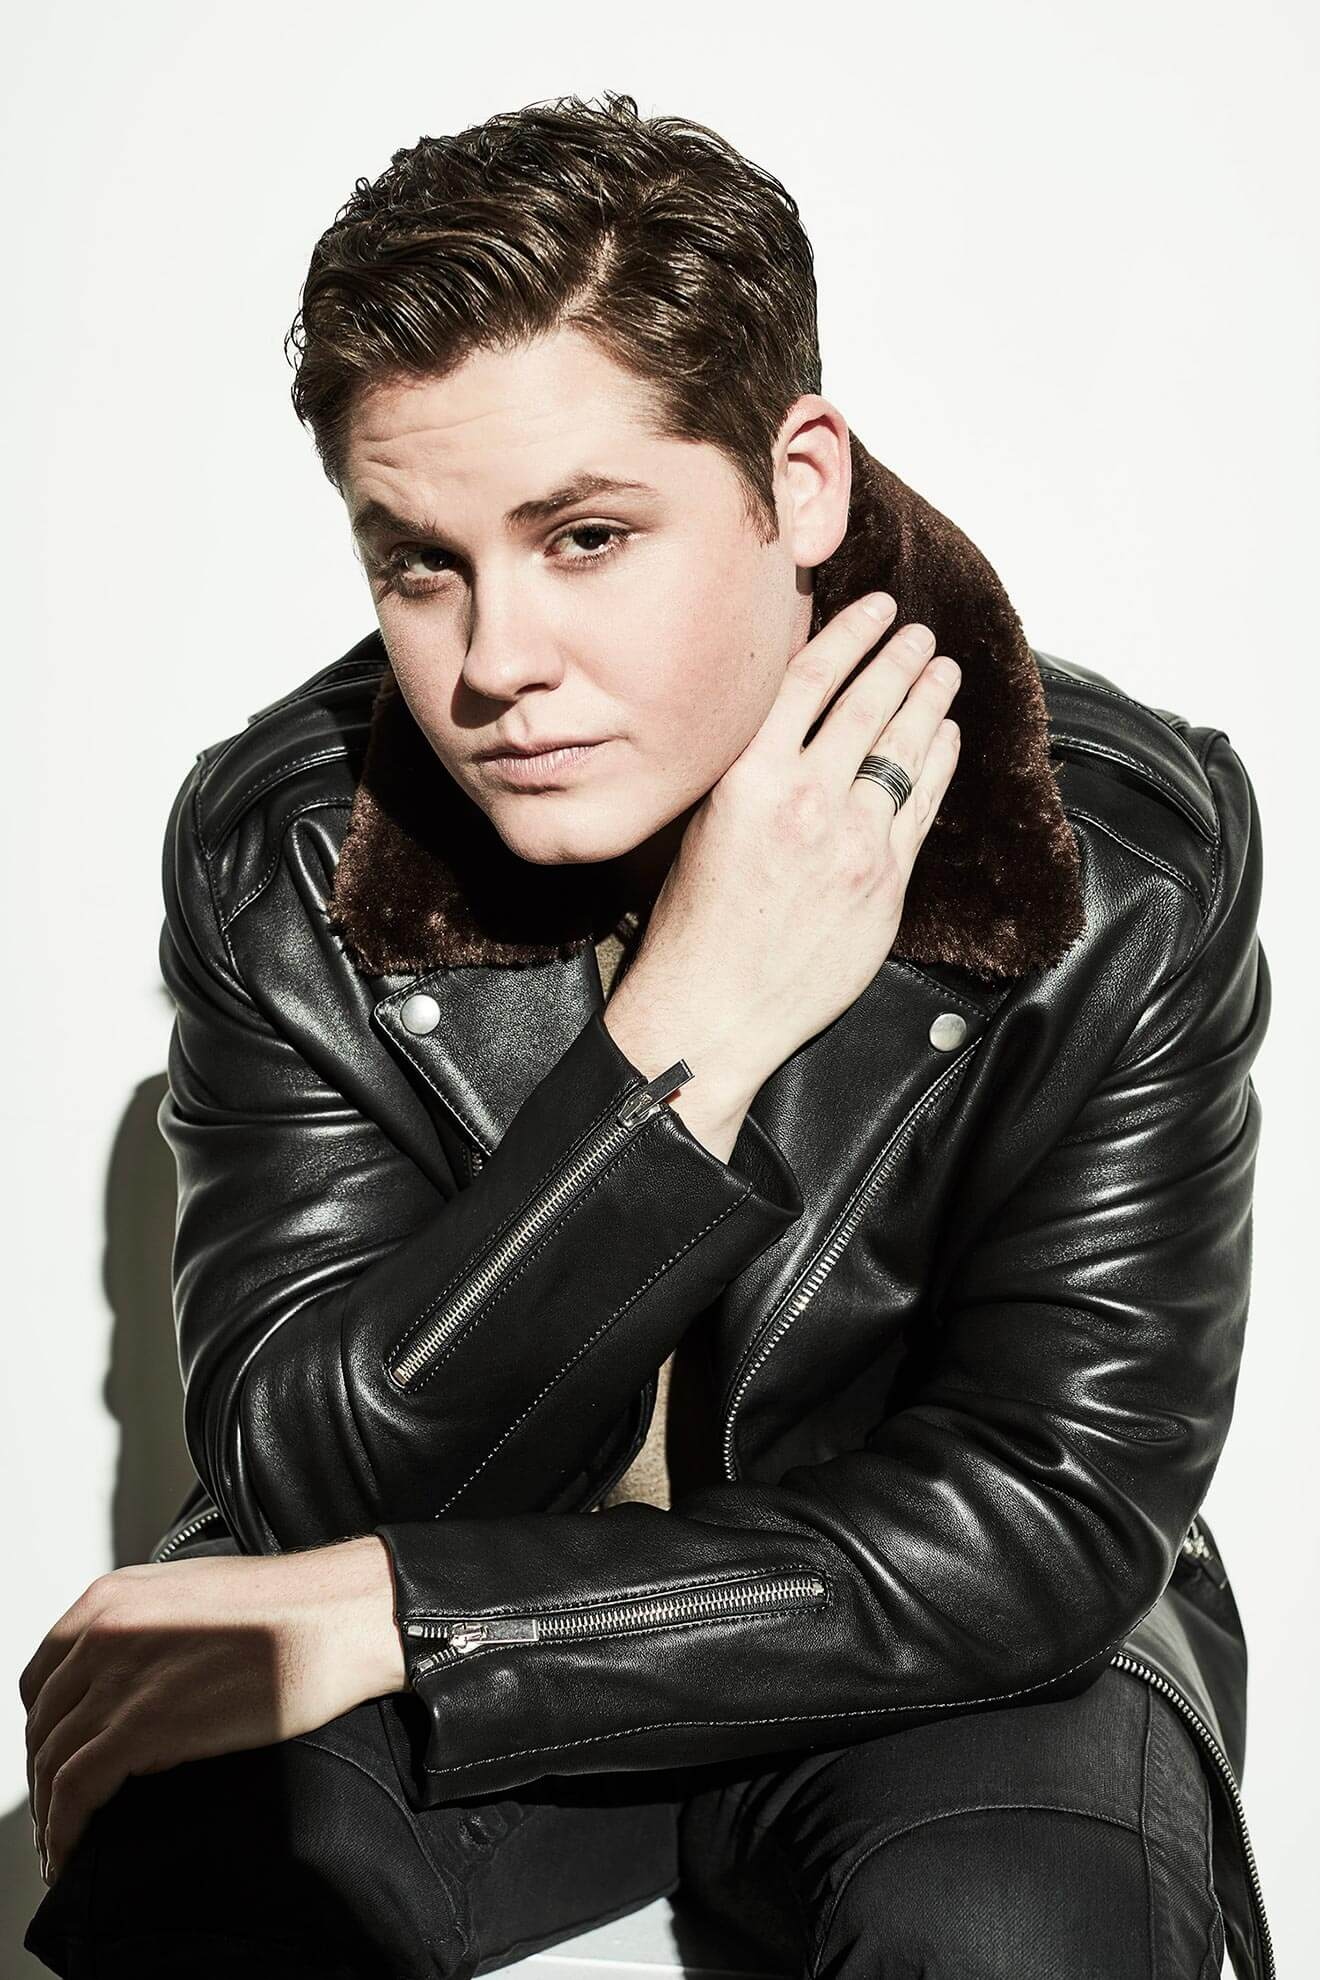 Chillin' with Matt Shively, black jacket portrait